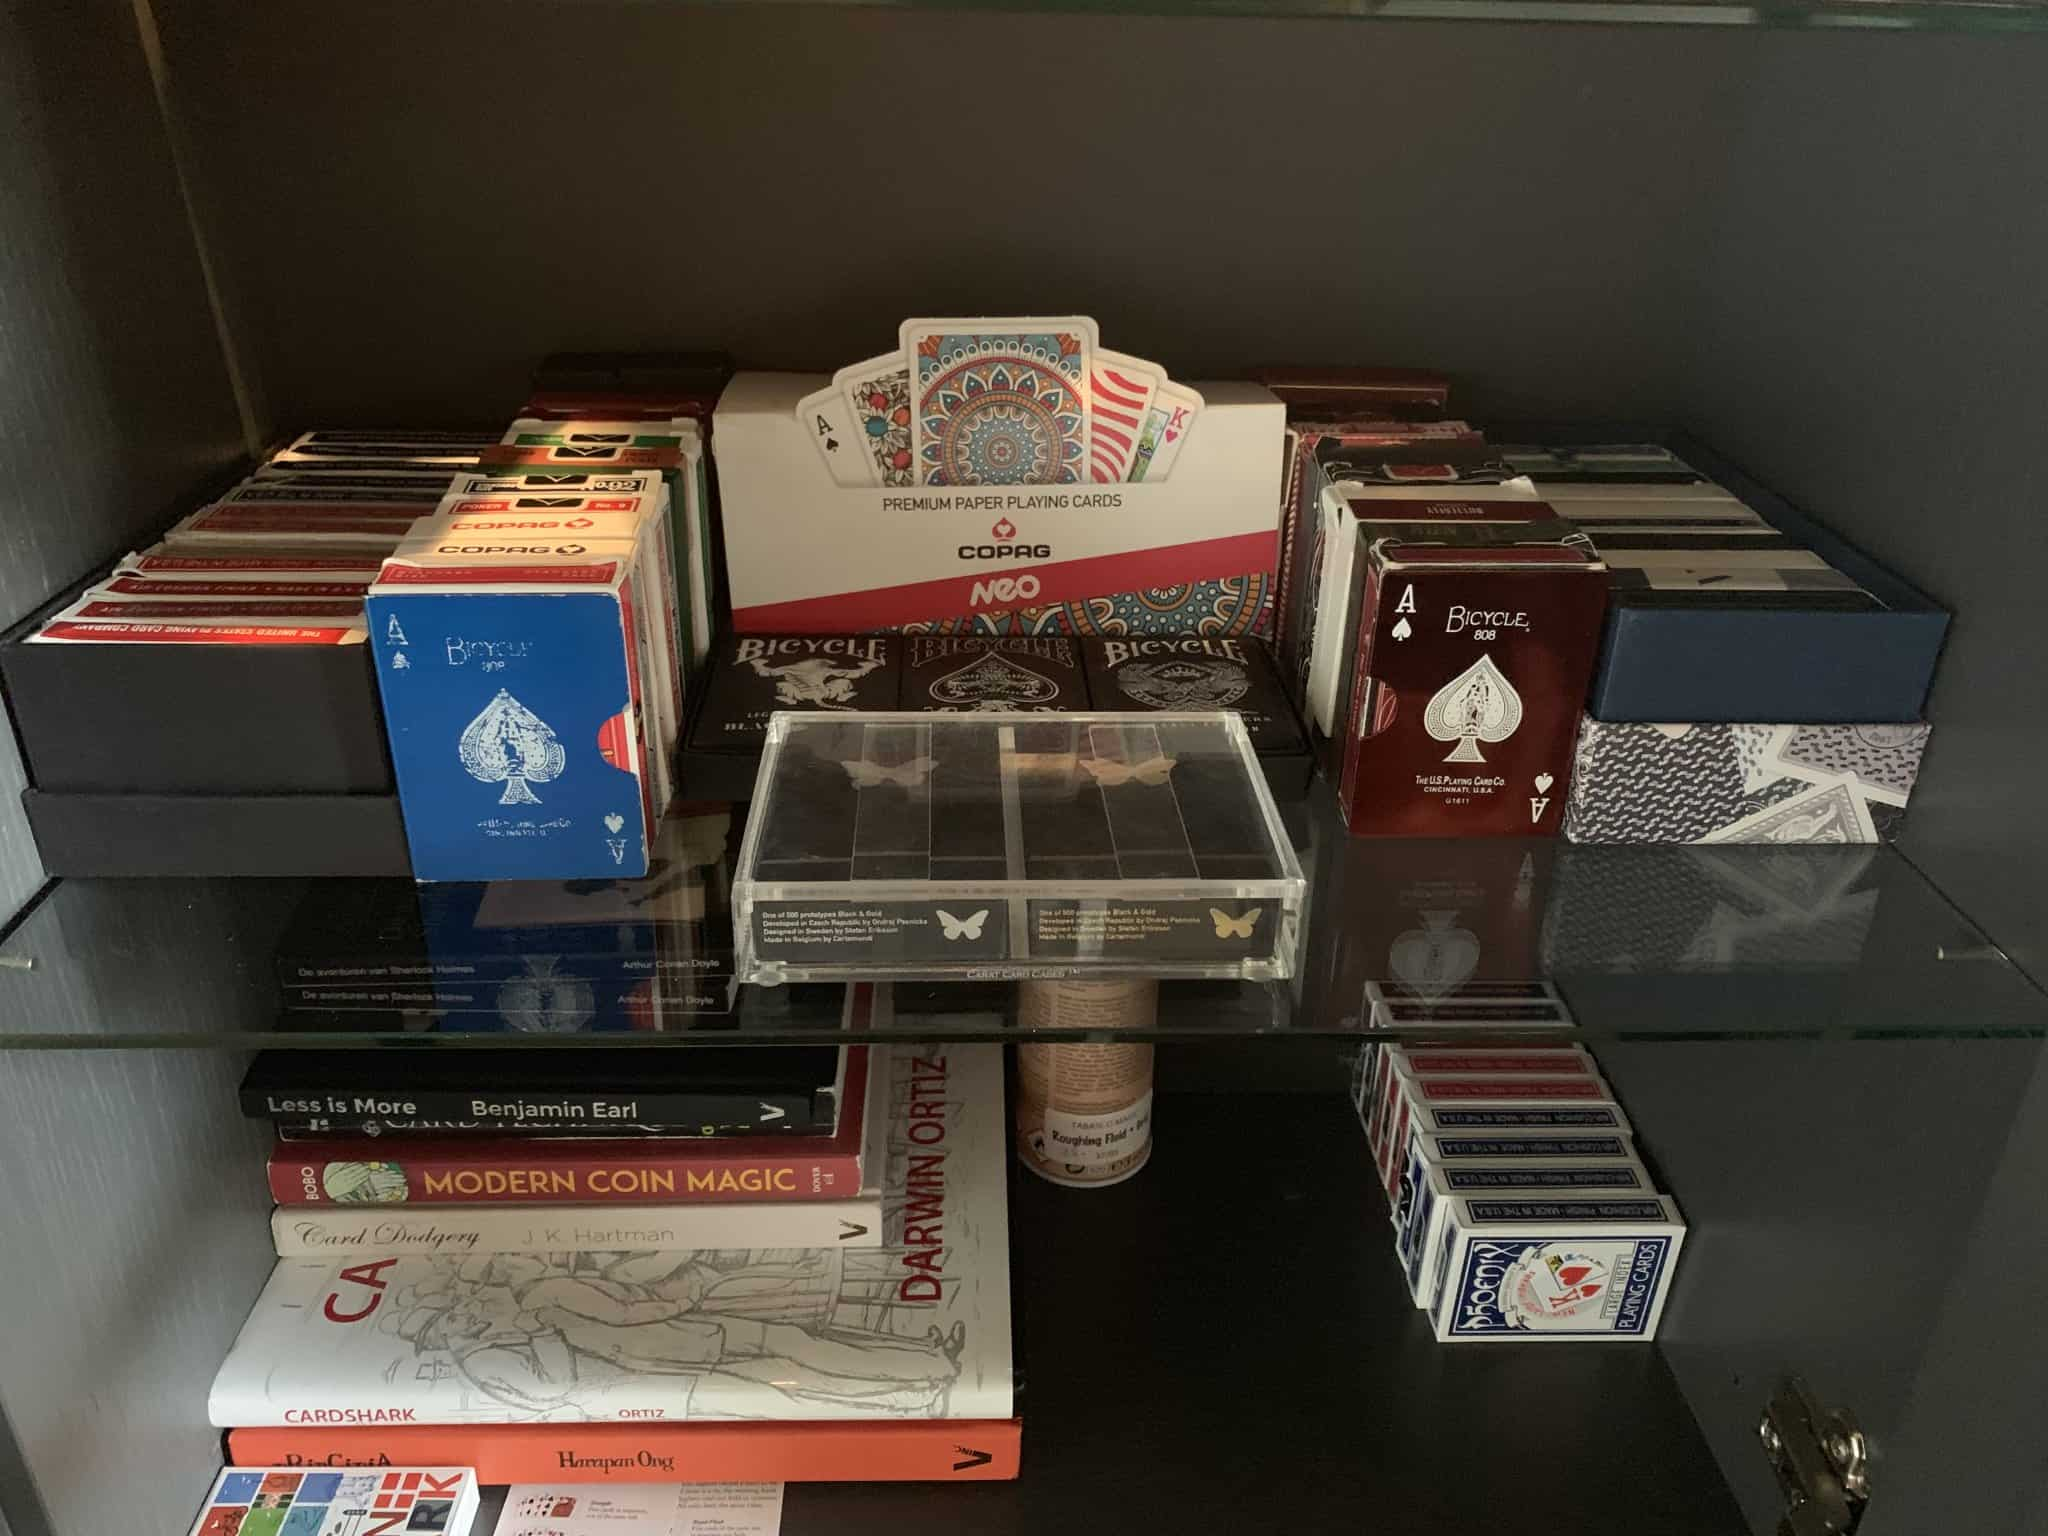 All my decks… Started collecting cards as a consequence to doing magic, now it's kore of an